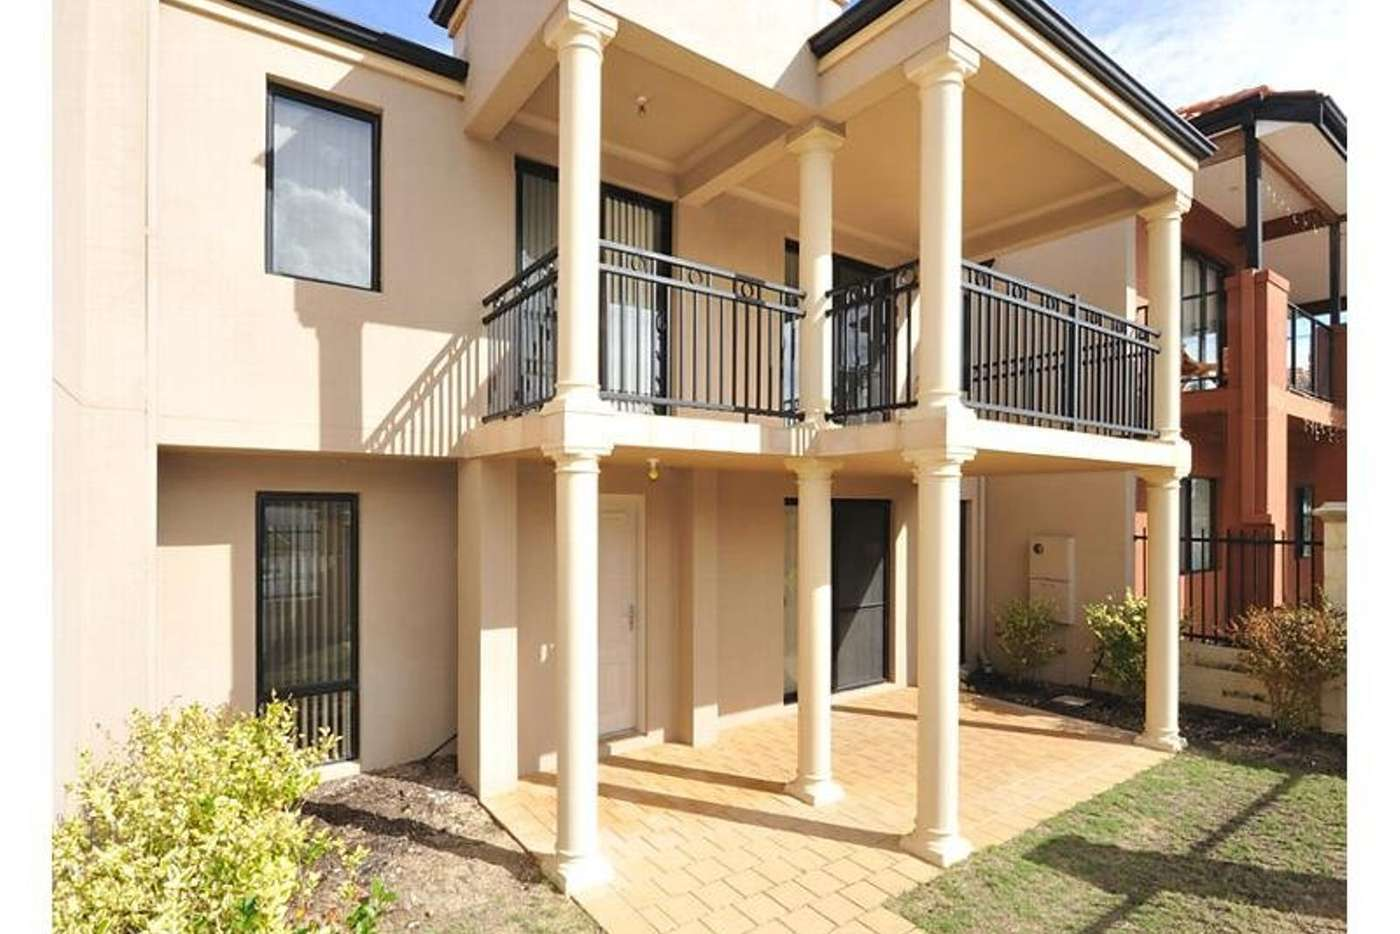 Main view of Homely house listing, 14 Village Mews, Wannanup WA 6210